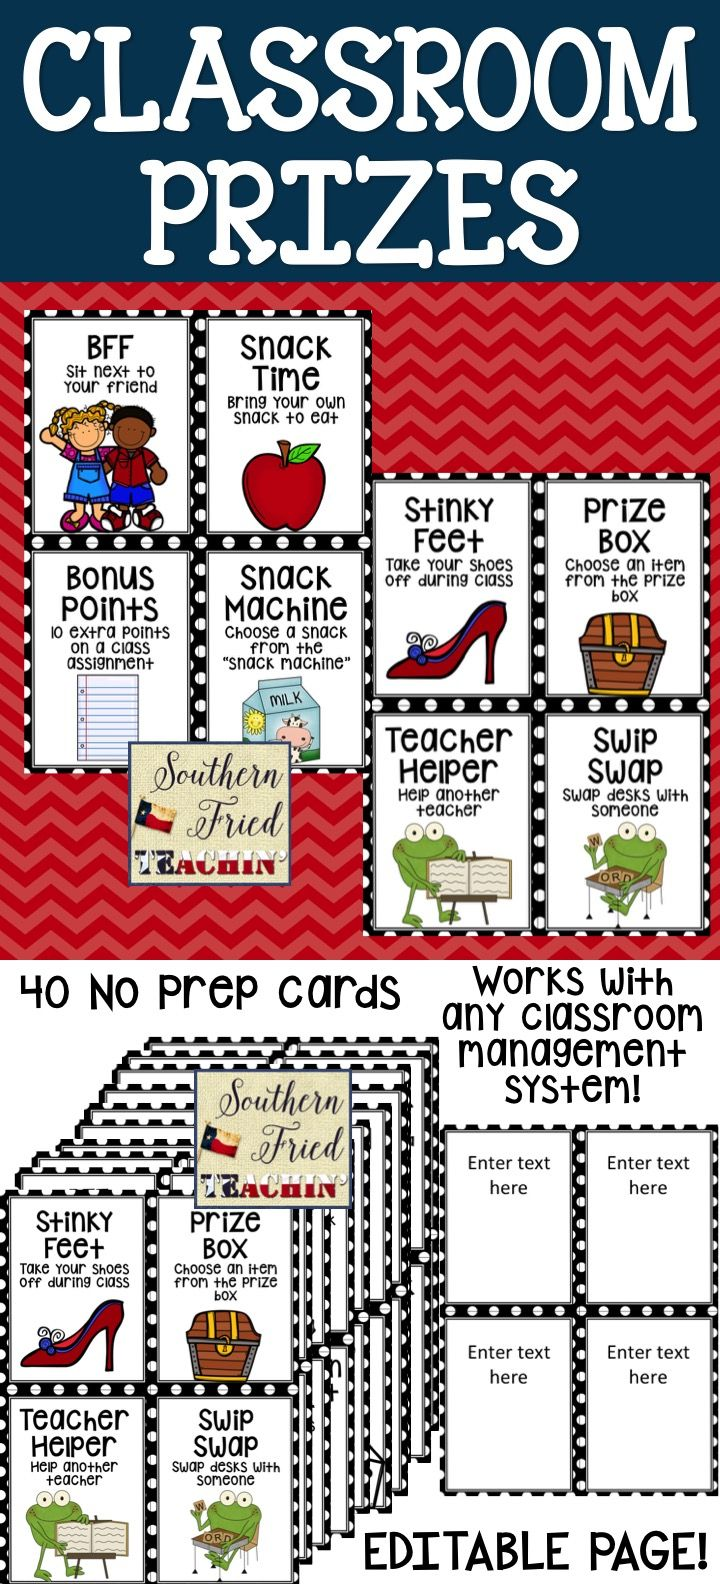 Looking for fun, cute classroom prizes? Especially ones that don't cost any money?  Then these might be what you're looking for! All you have to do is print, laminate, and cut out! Included are 40 classroom prize coupons that can be used for any classroom management system and an EDITABLE page where you can add your own prize, using your own text and clip art.